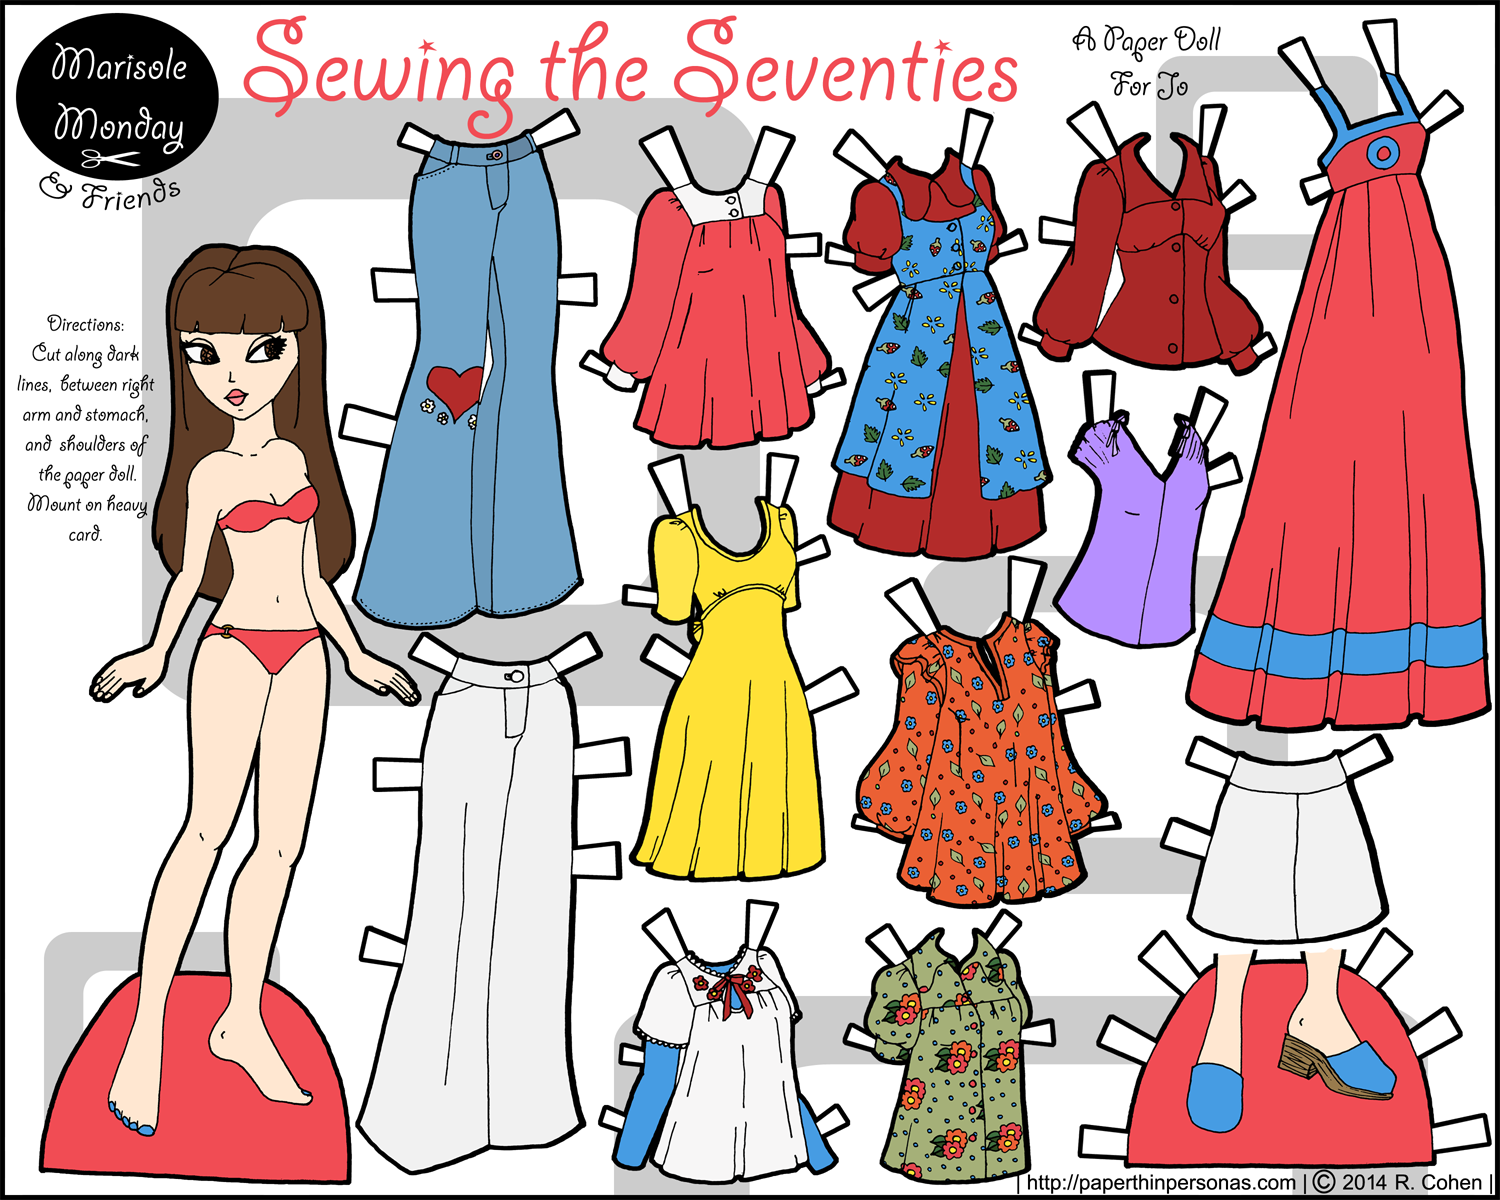 A color paper doll with a 1970s wardrobe from vintage sewing pattern covers. Her thirteen piece wardrobe can be shared with other Marisole Monday & Friend's paper dolls.